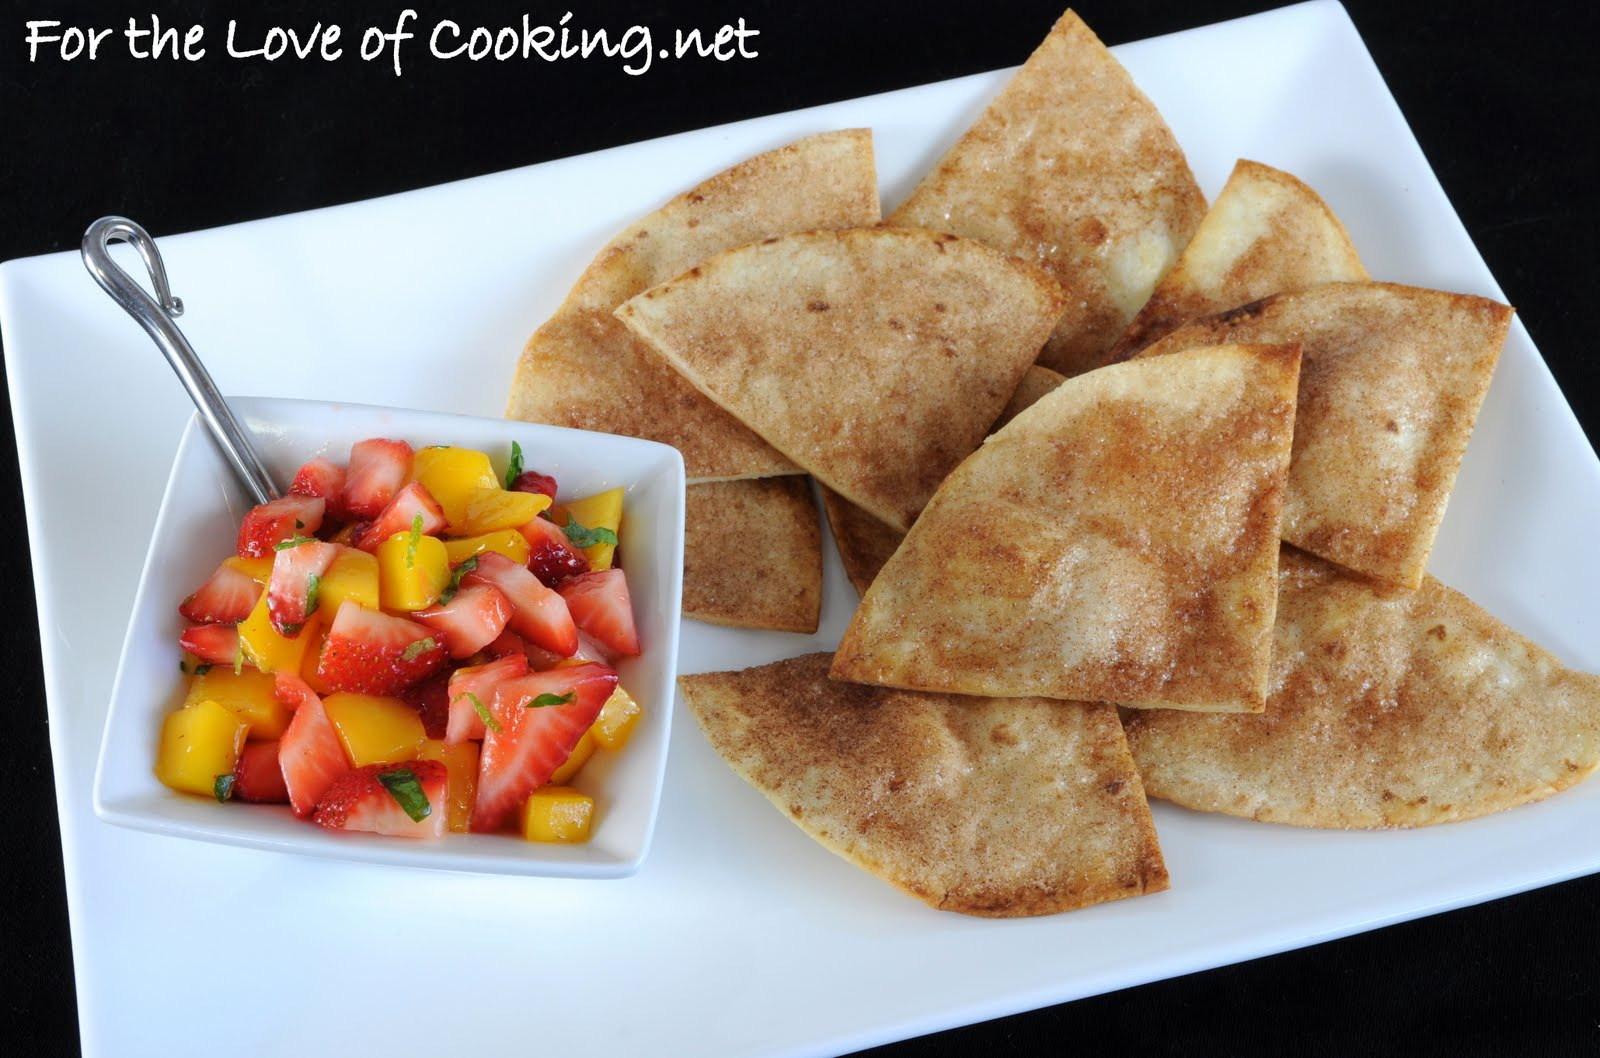 ... the Love of Cooking: Strawberry and Mango Salsa with Cinnamon Chips